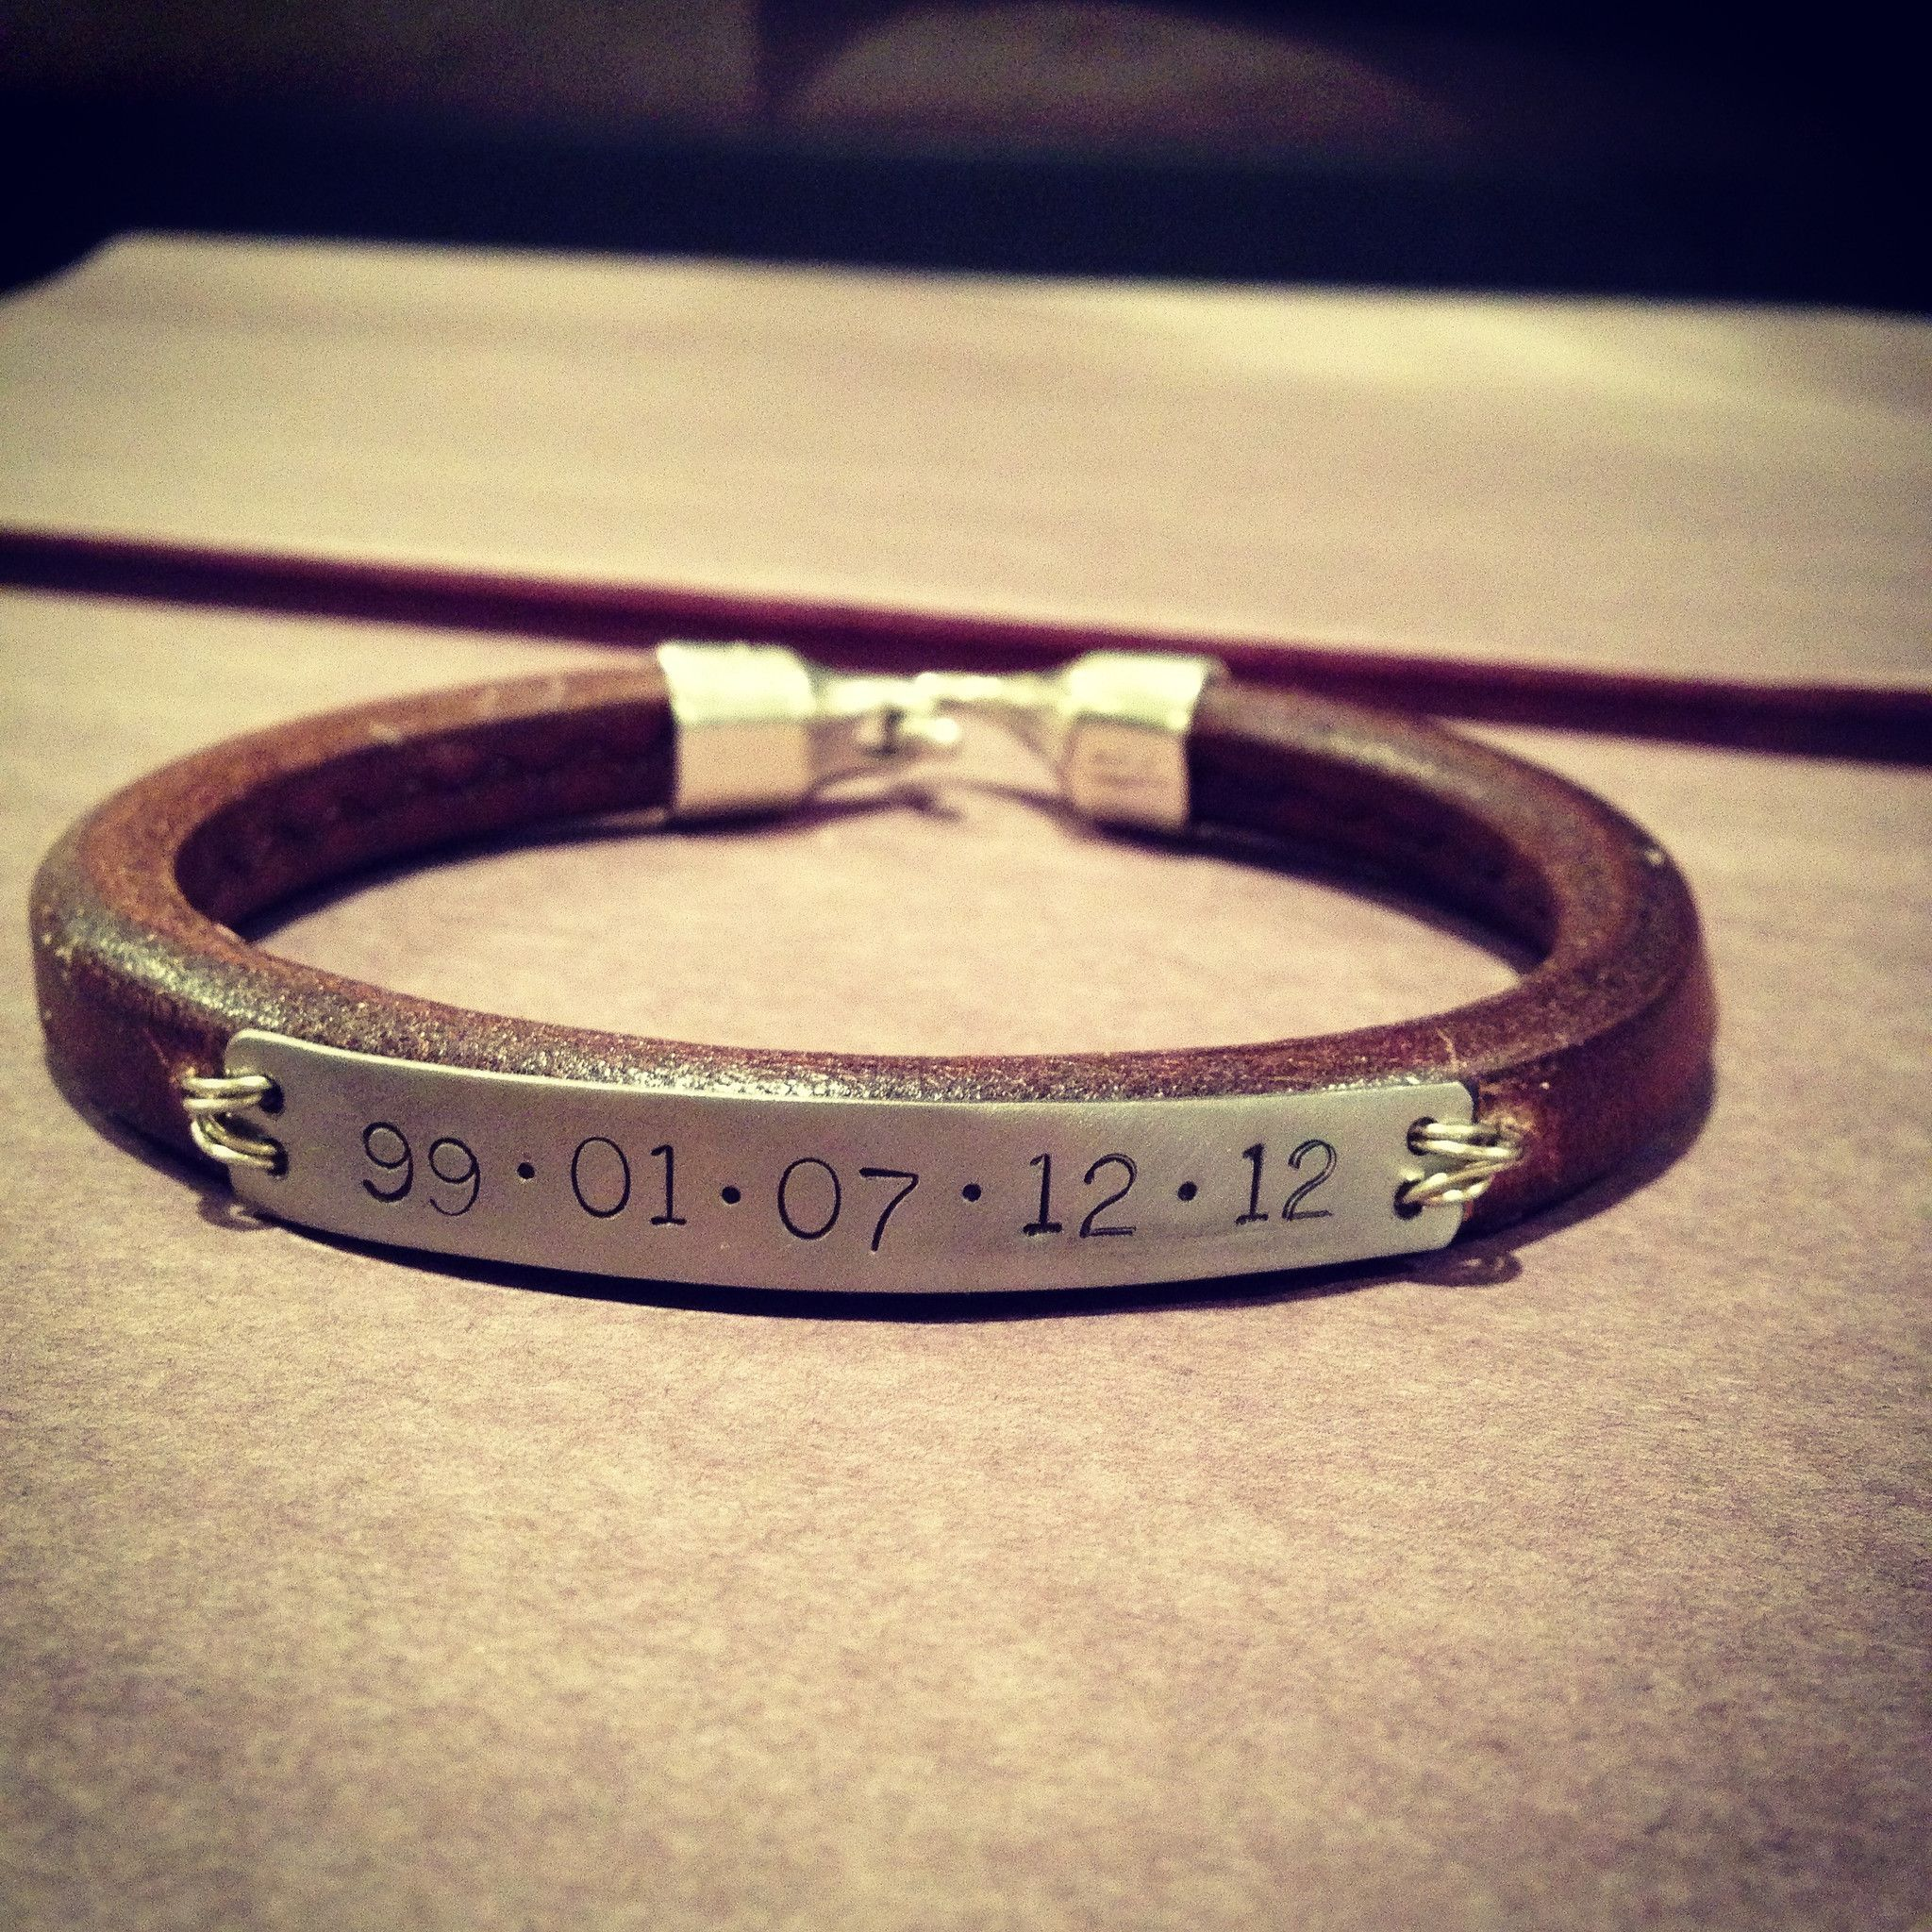 com and longitude coordinates dp location latitude stamped personalized customized bracelet handmade cuff hand amazon